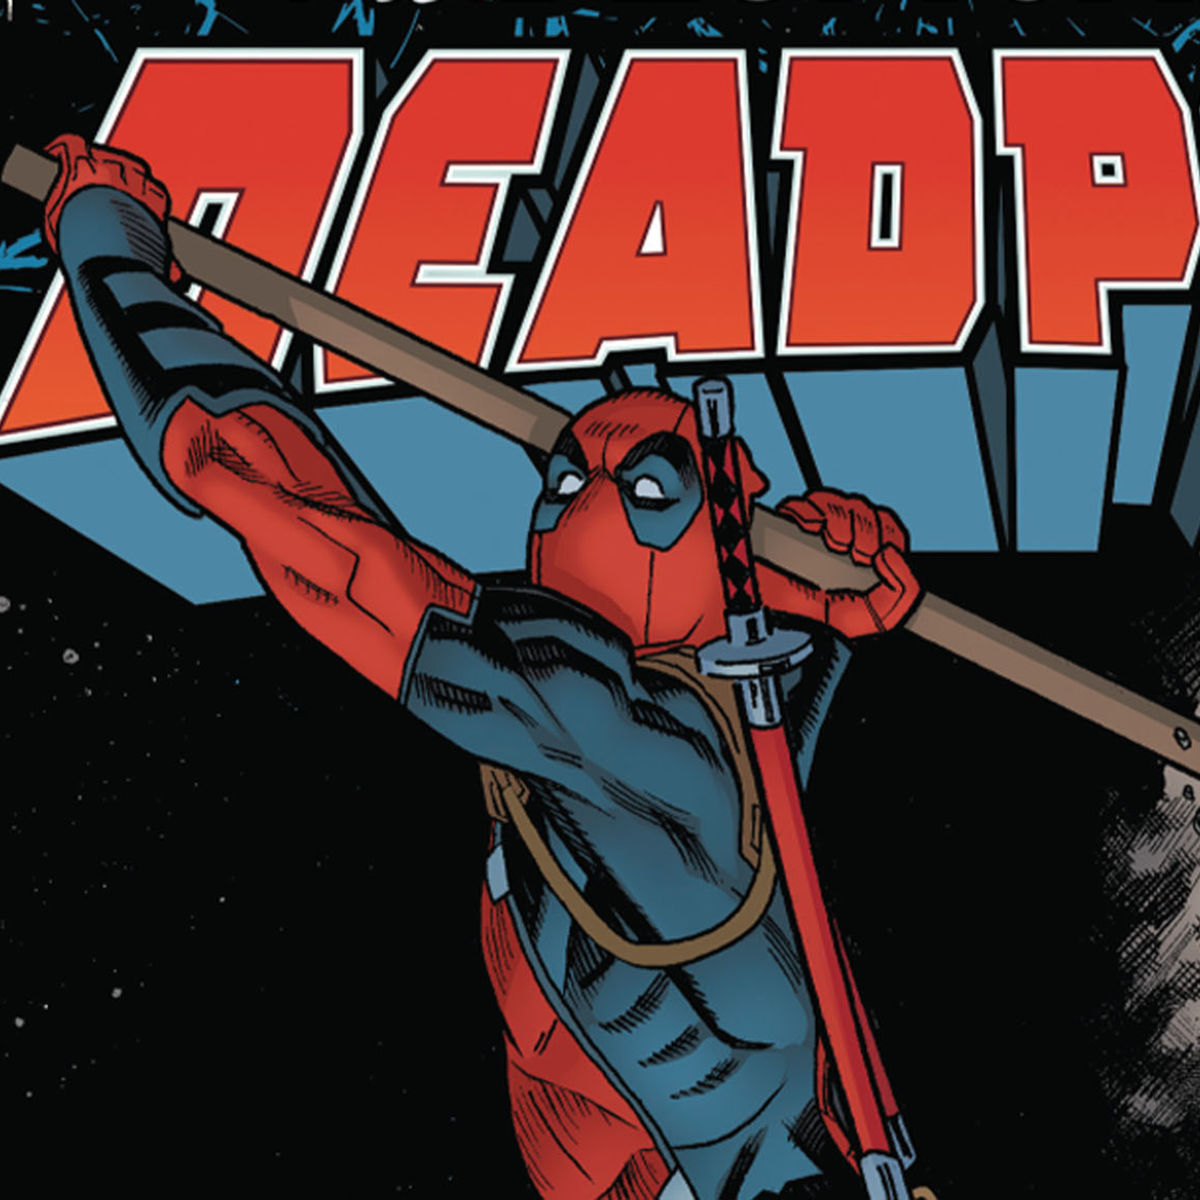 despicable_deadpool_295_hero_image.jpg